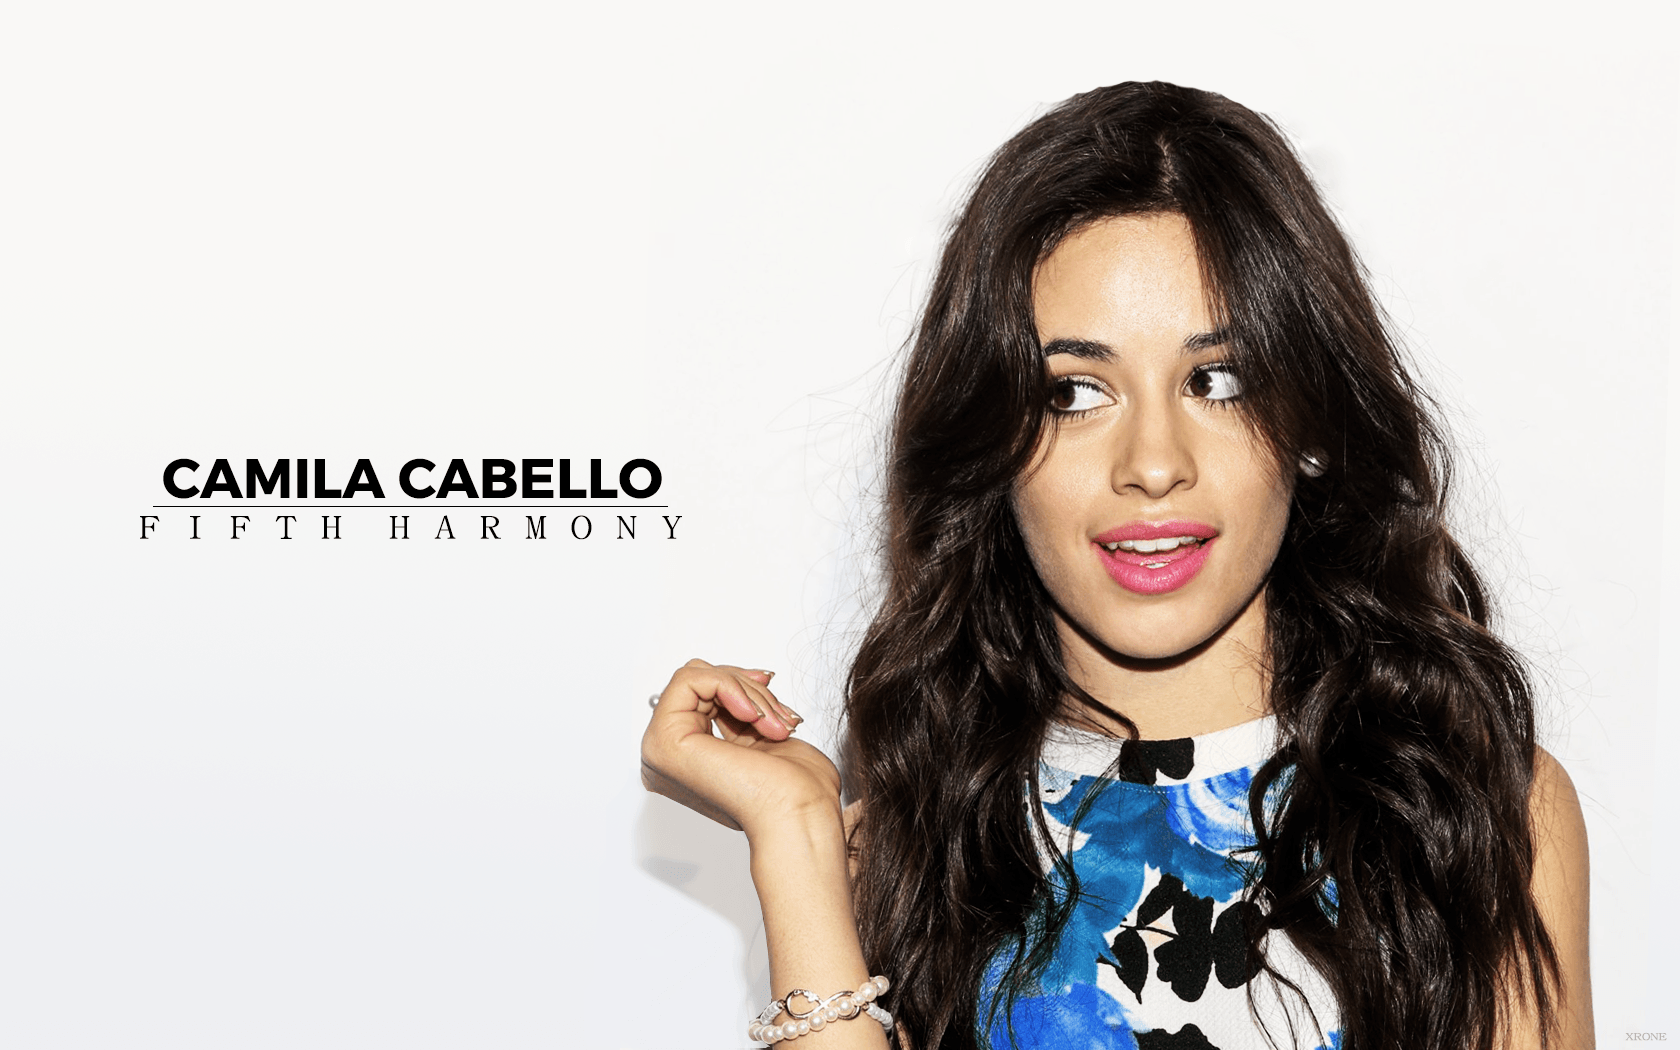 Fifth Harmony Camila Cabello Camila Cabello Wallpapers Wallpaper Cave